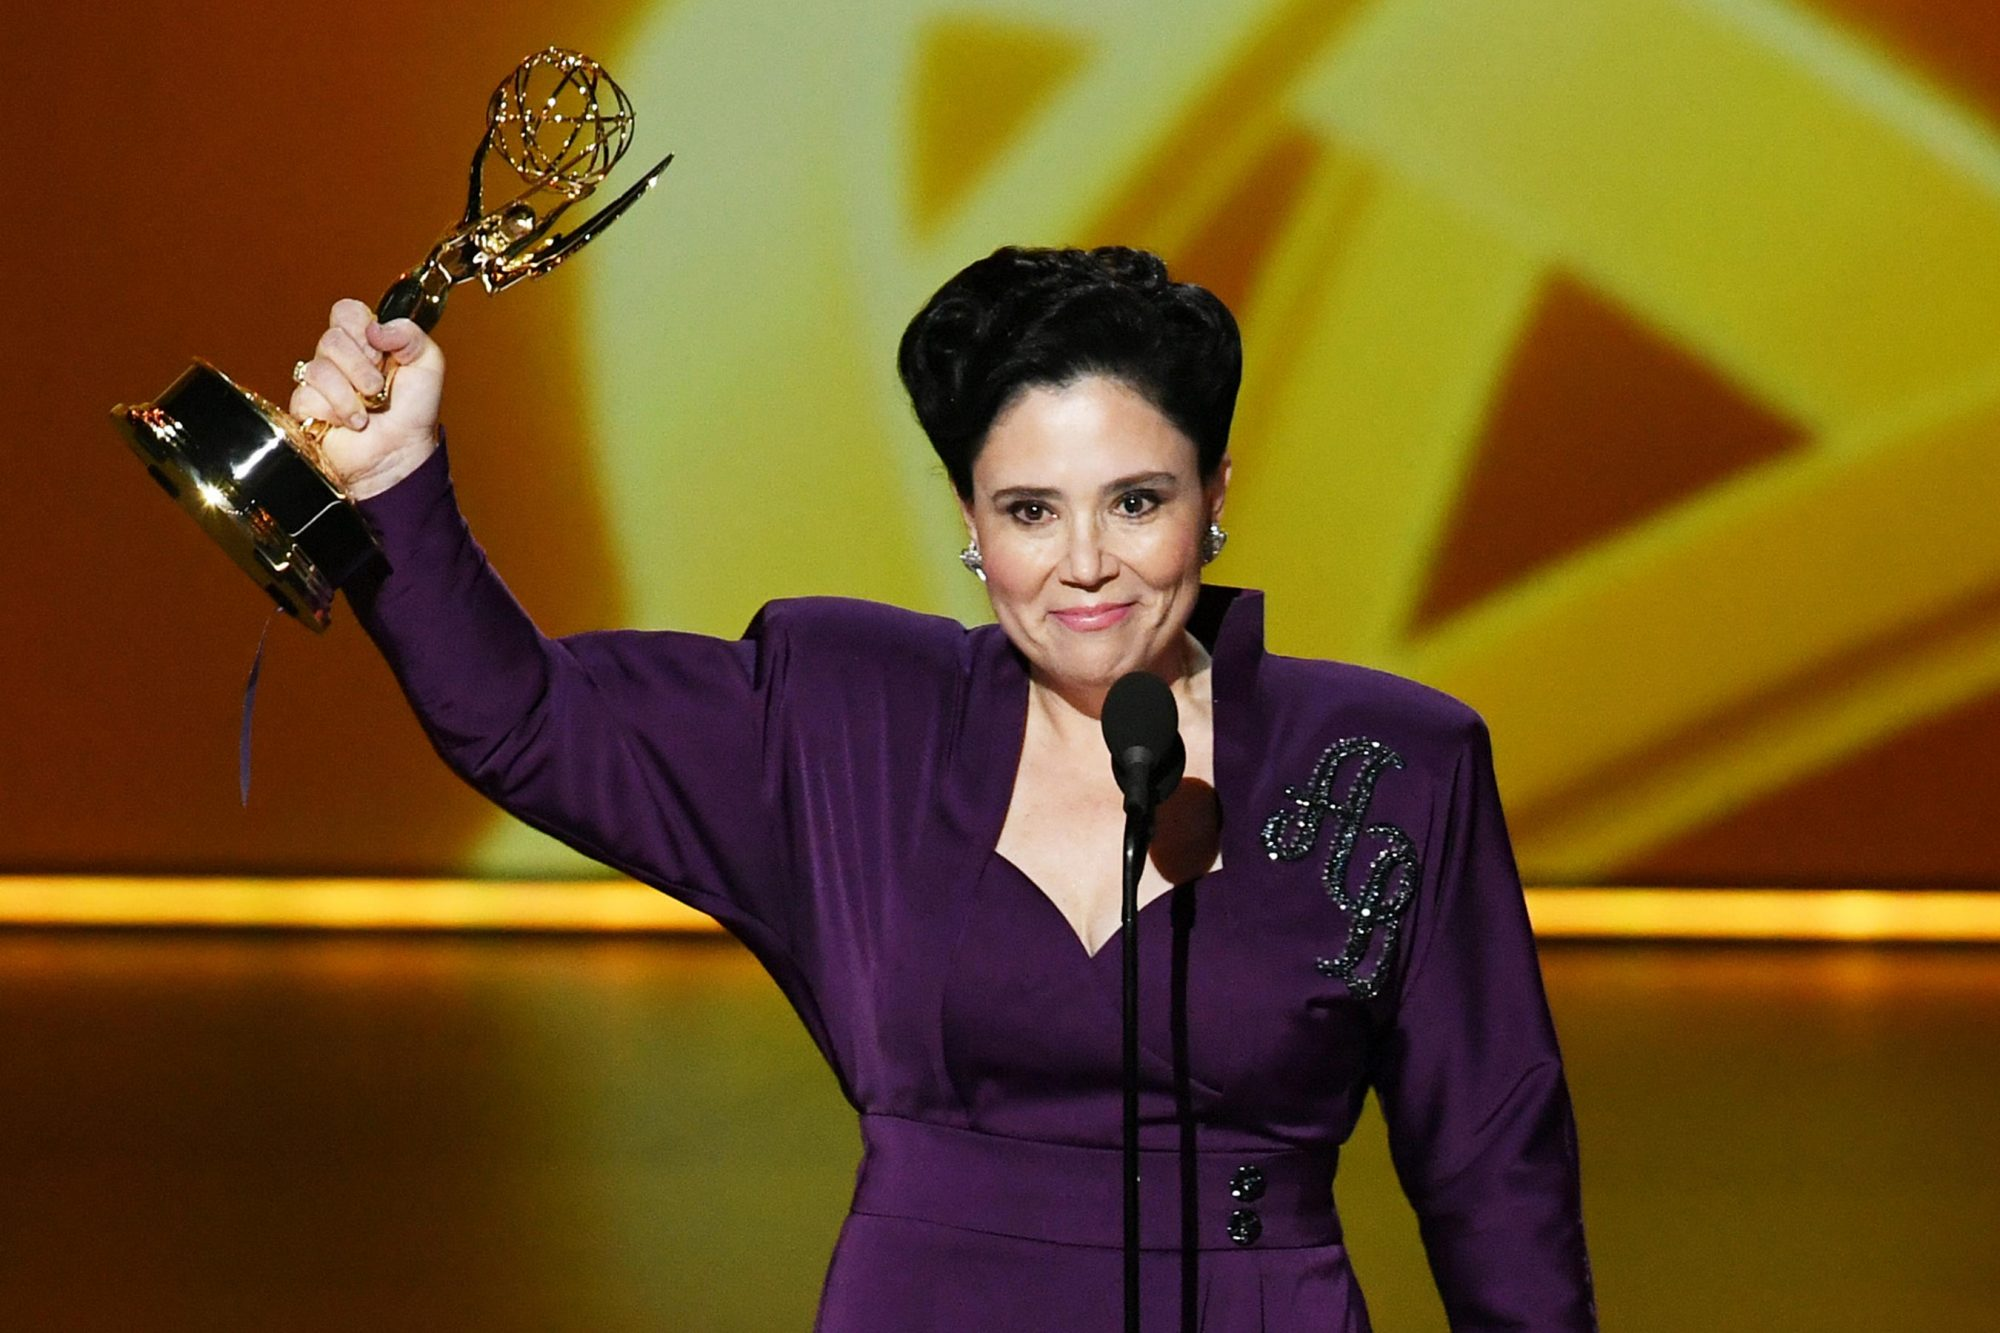 Alex Borstein's acceptance speech